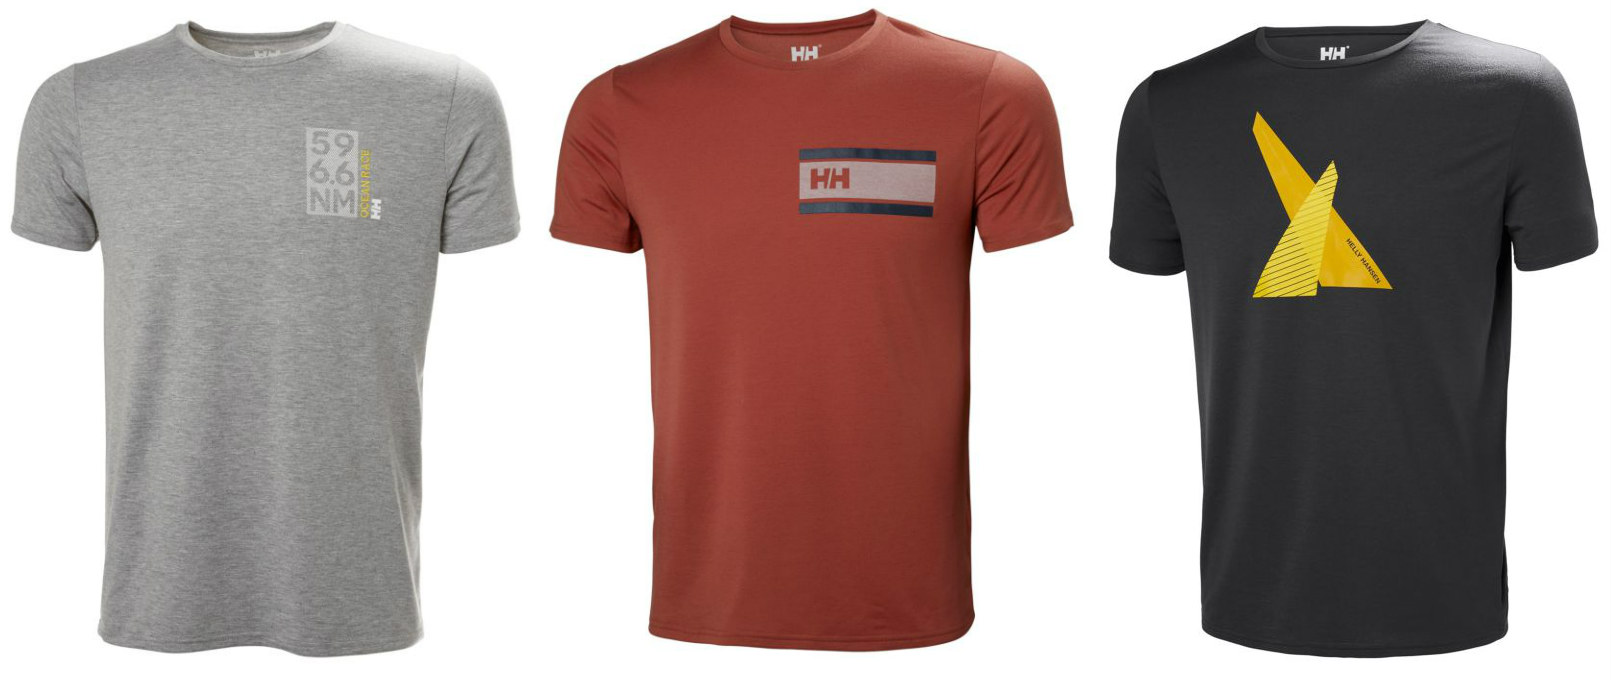 Review of shore T-shirt by Helly Hansen